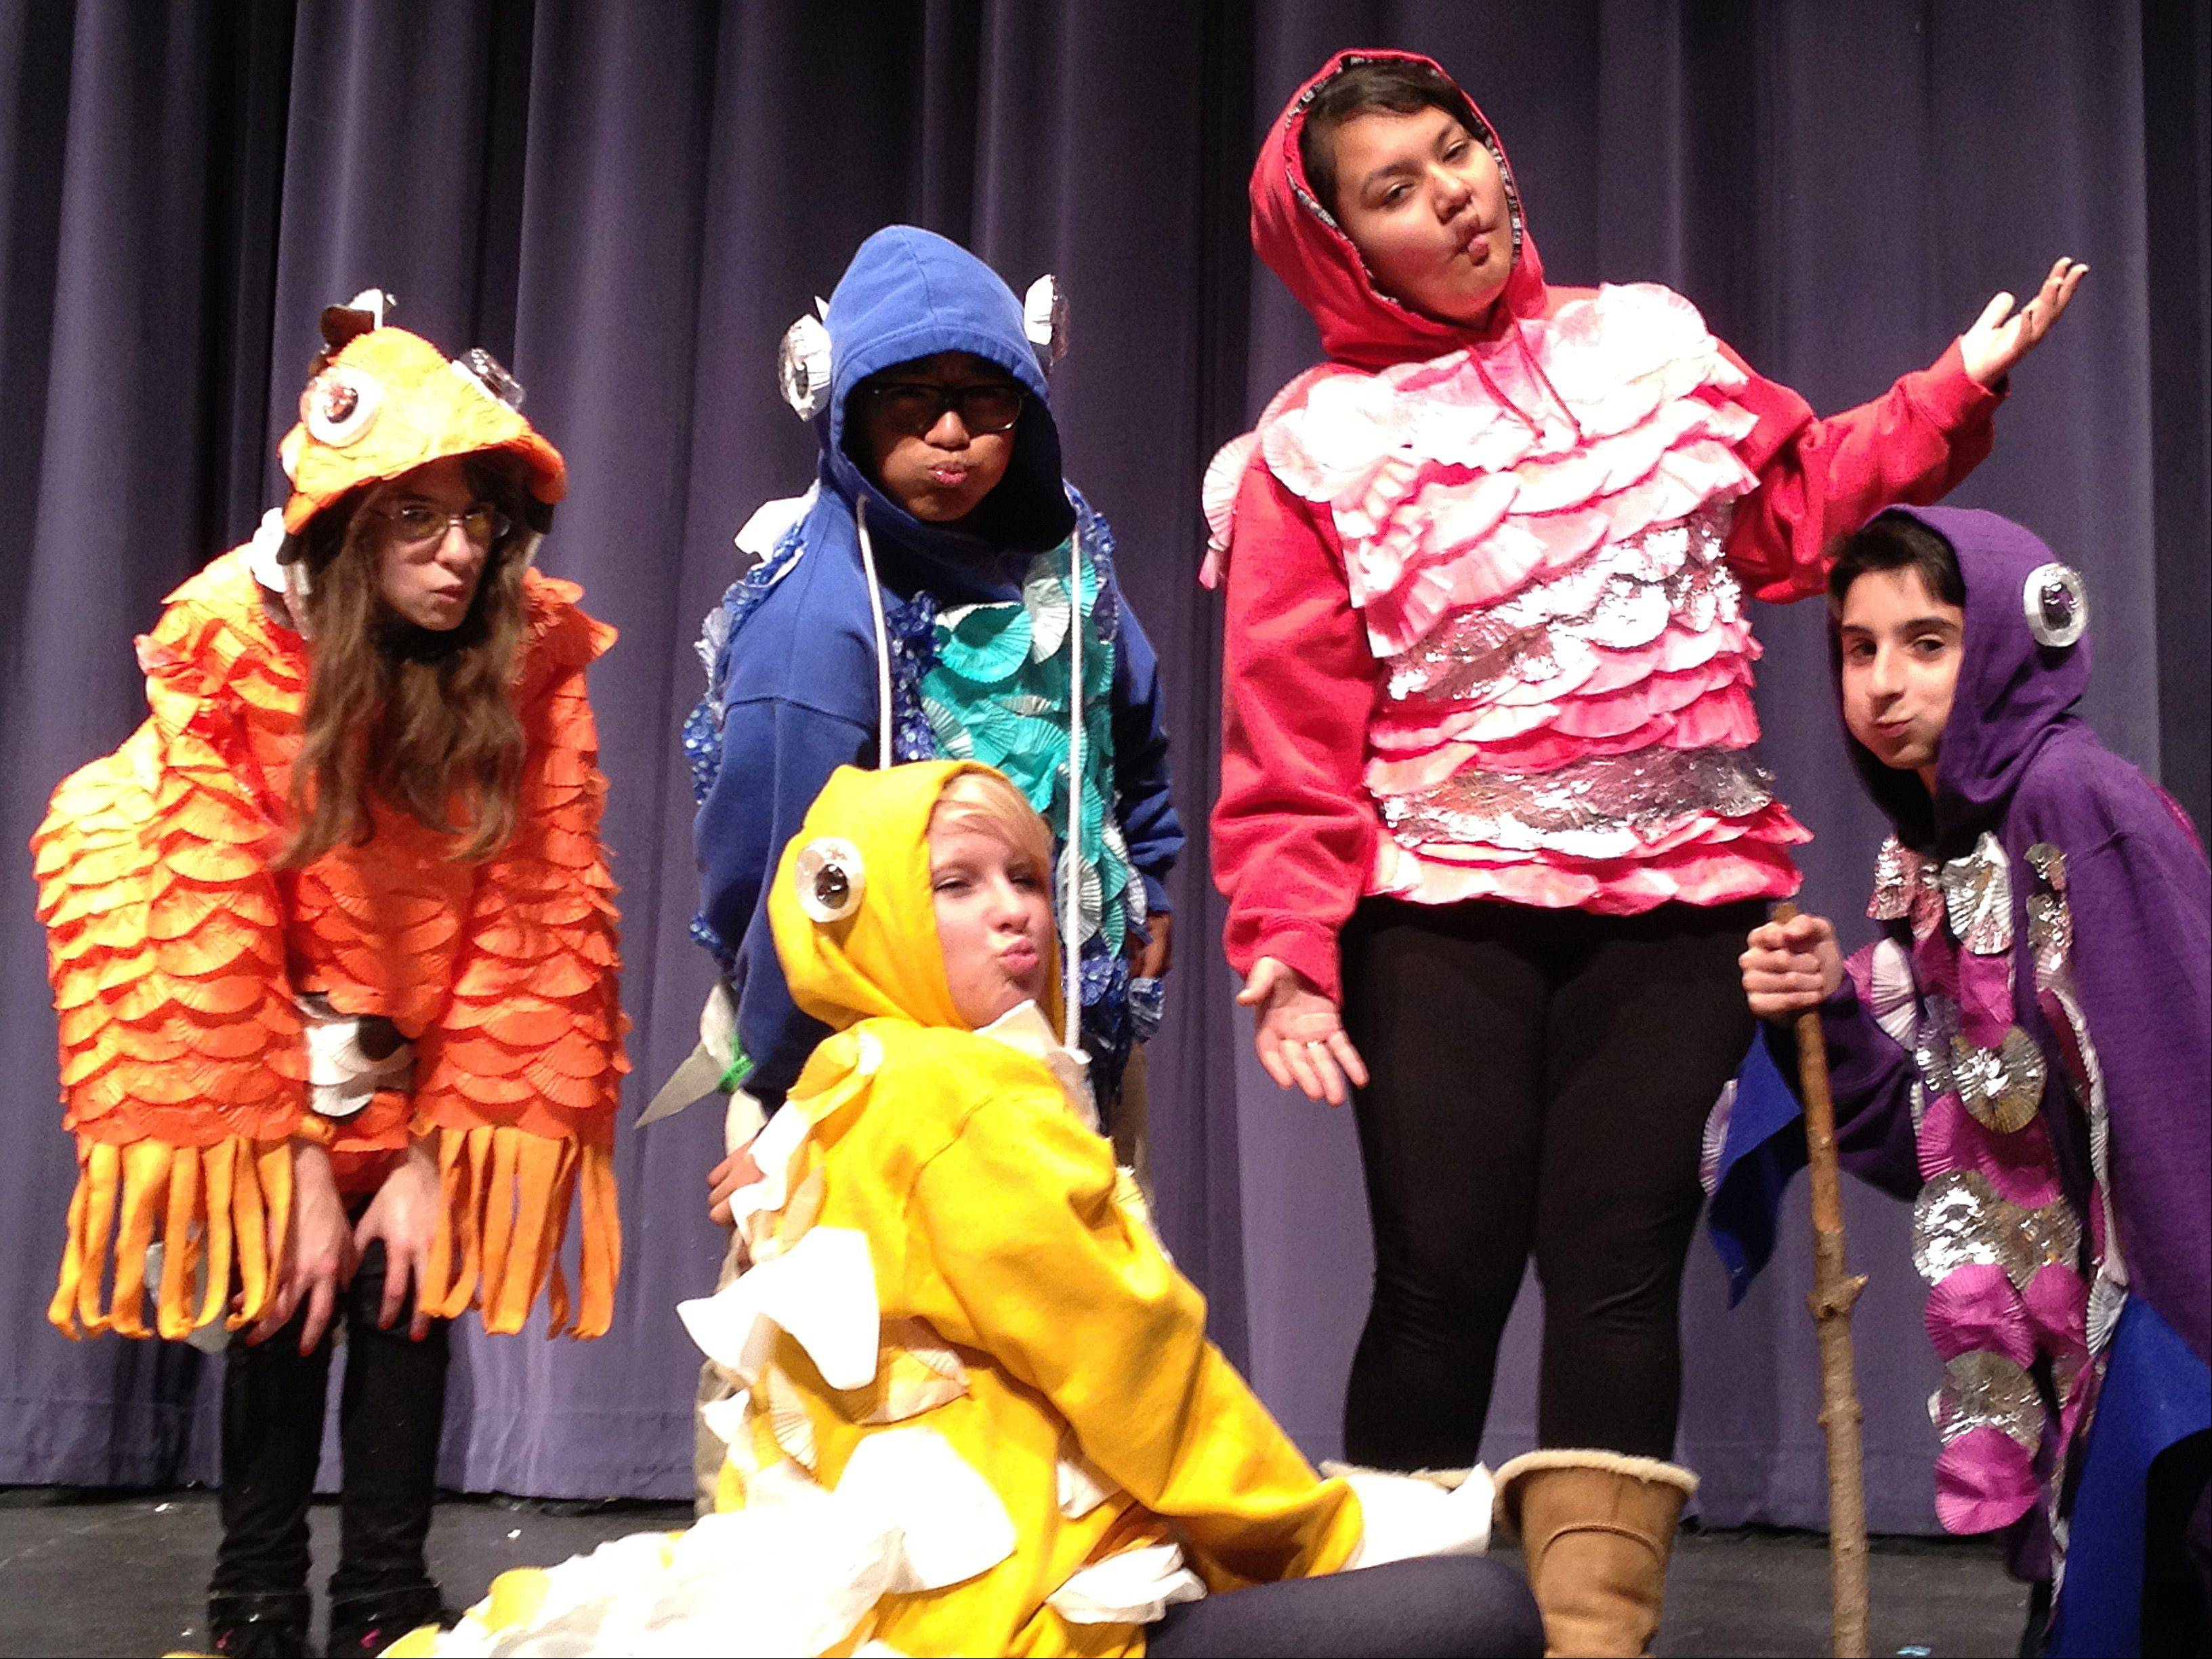 South Elgin High School�s �The Lorax� is an original production. Drama teacher Holly McNeill could not find a stage adaptation of the story, so she wrote the script herself.